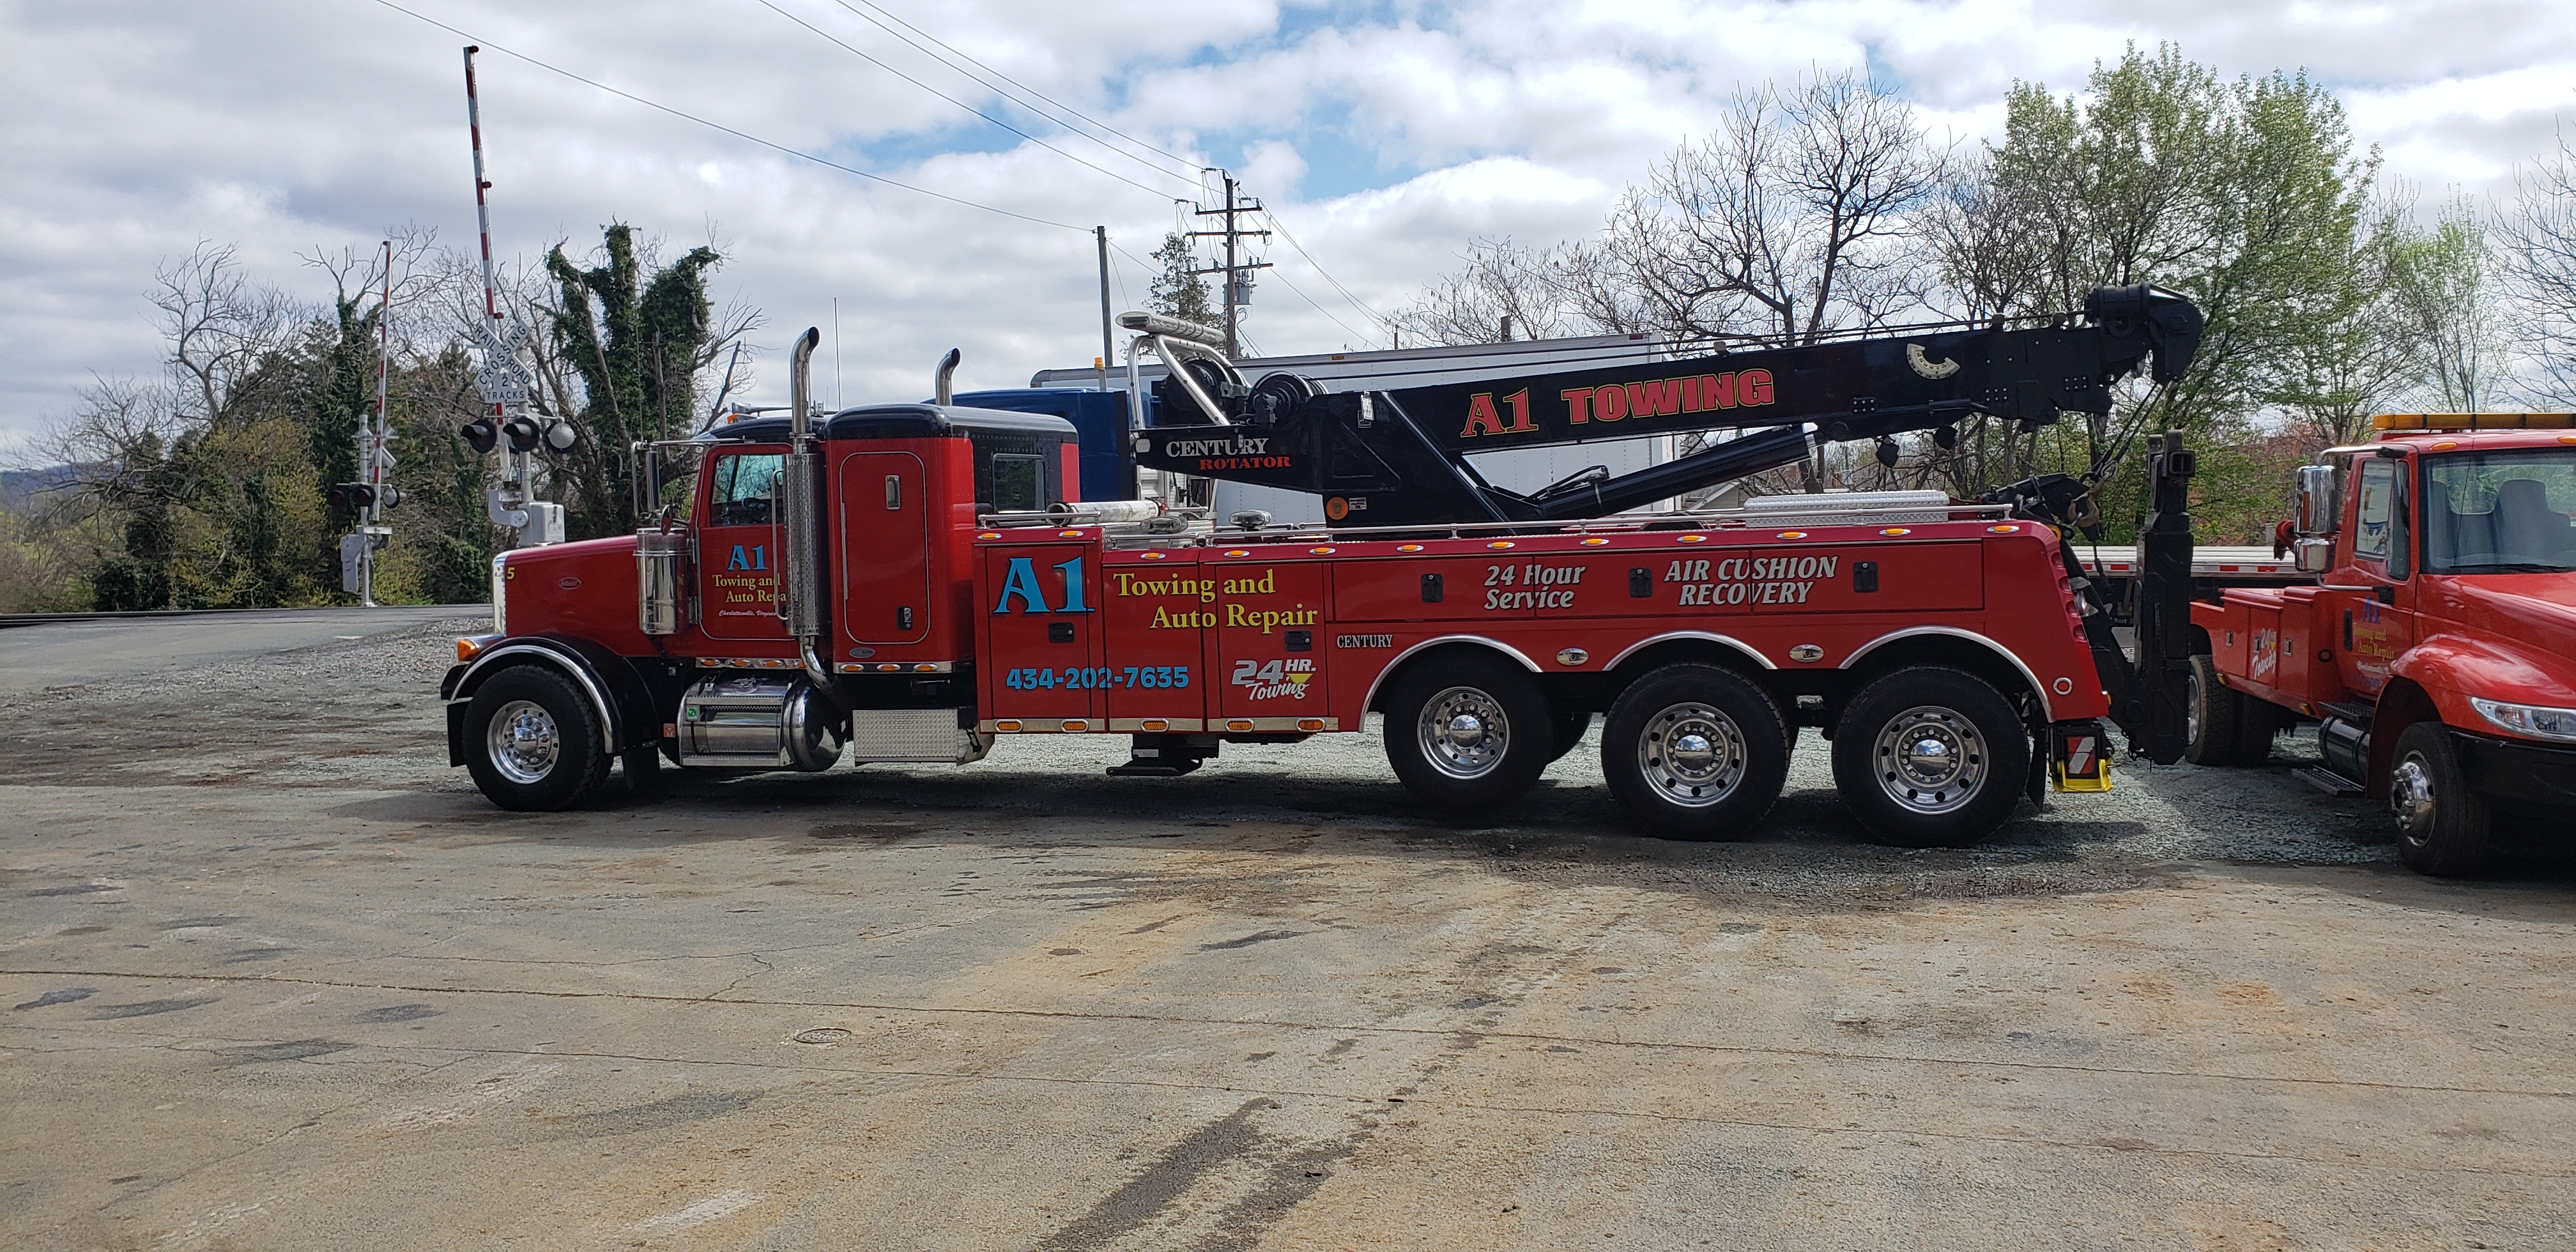 A1 Towing & Auto Repair logo